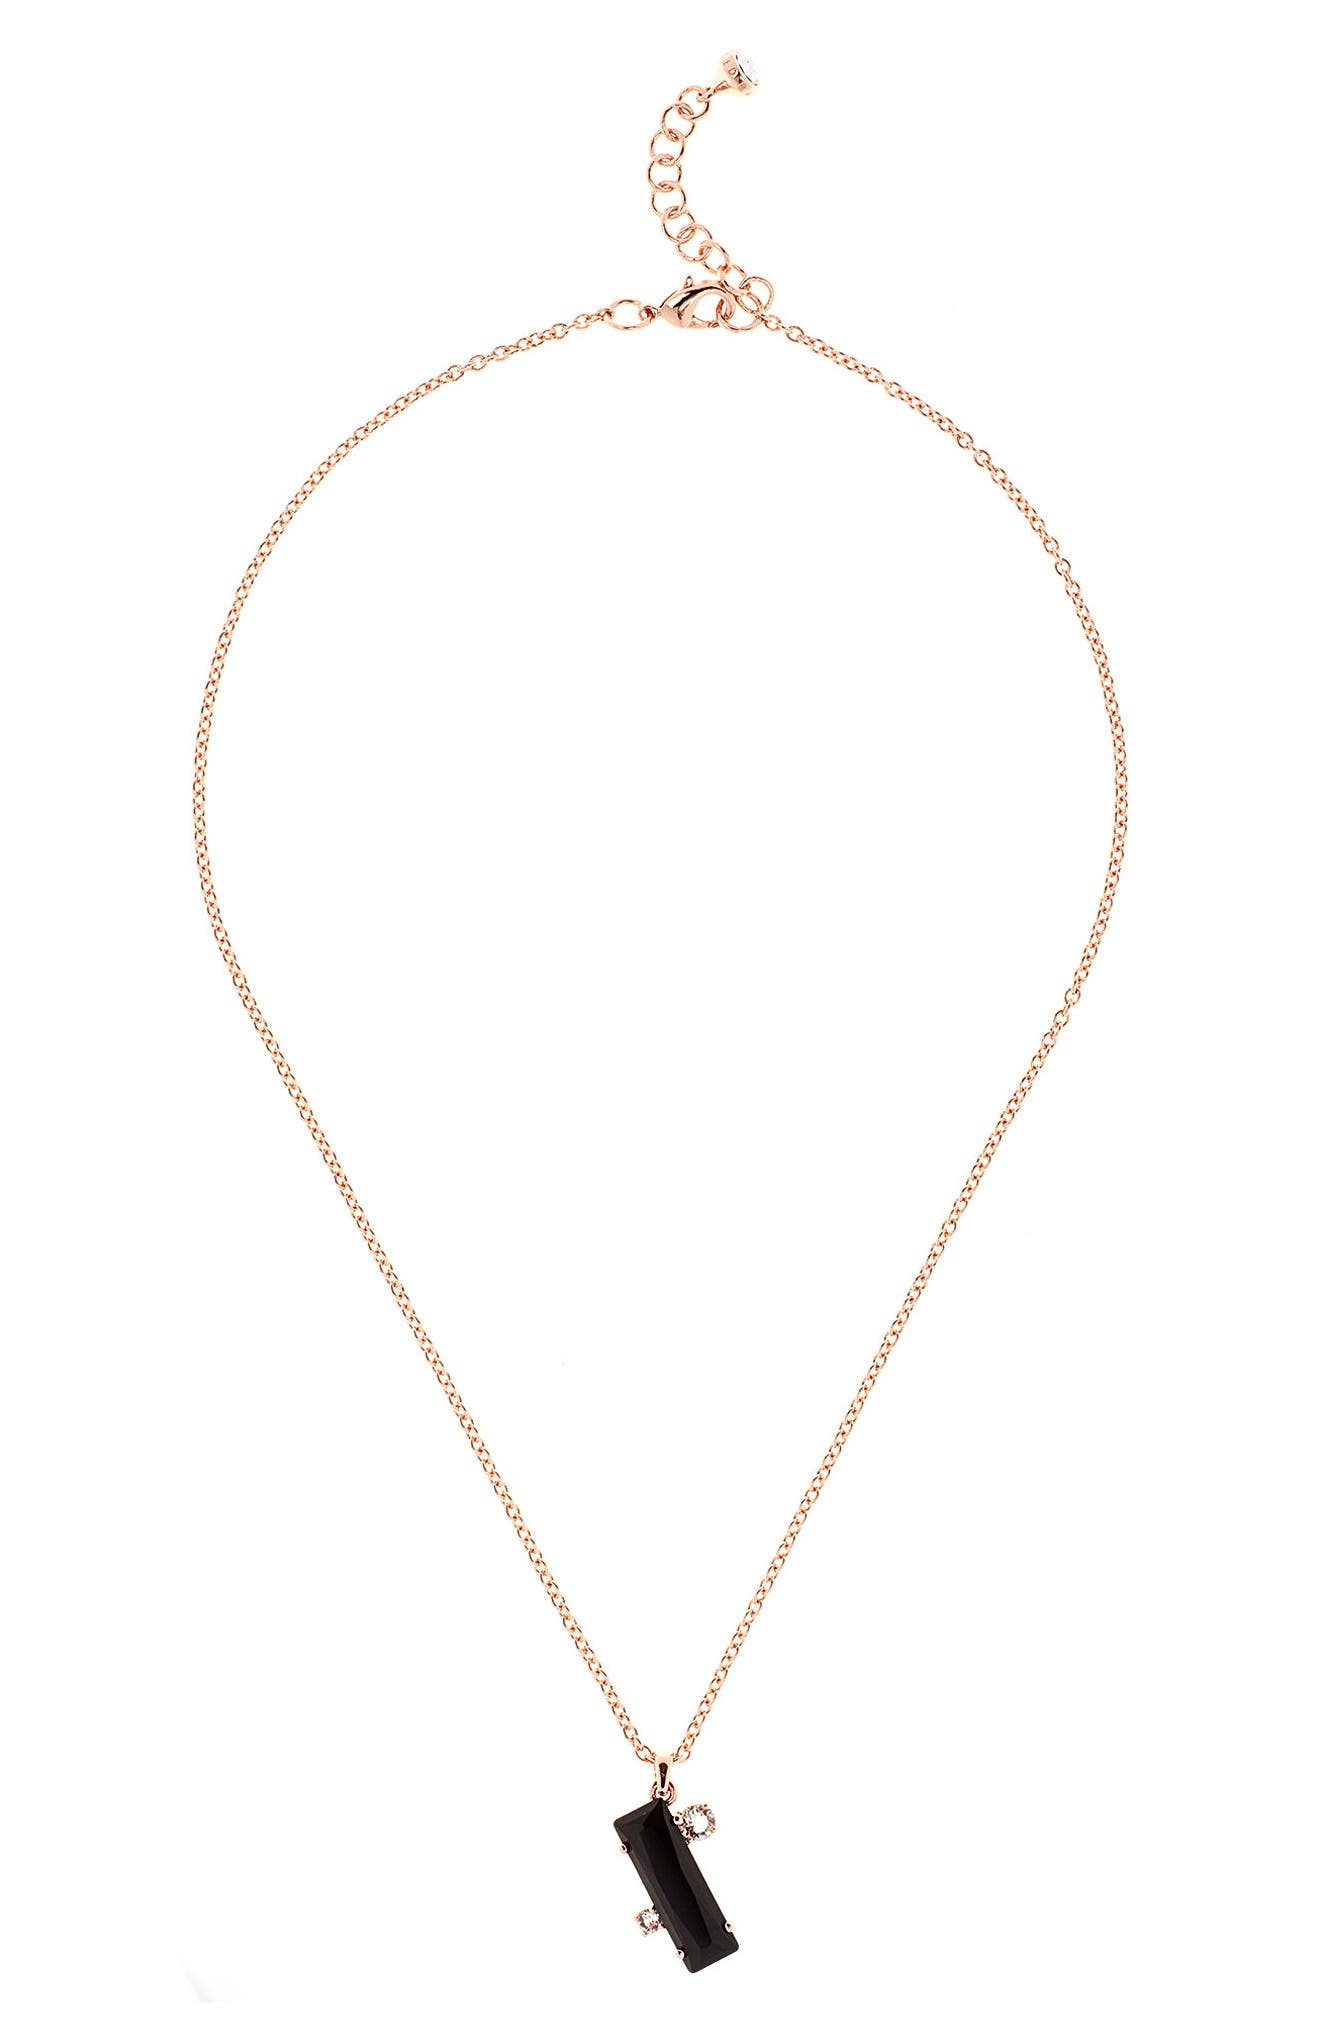 Blaeke Baguette Pendant Necklace,                             Main thumbnail 1, color,                             002